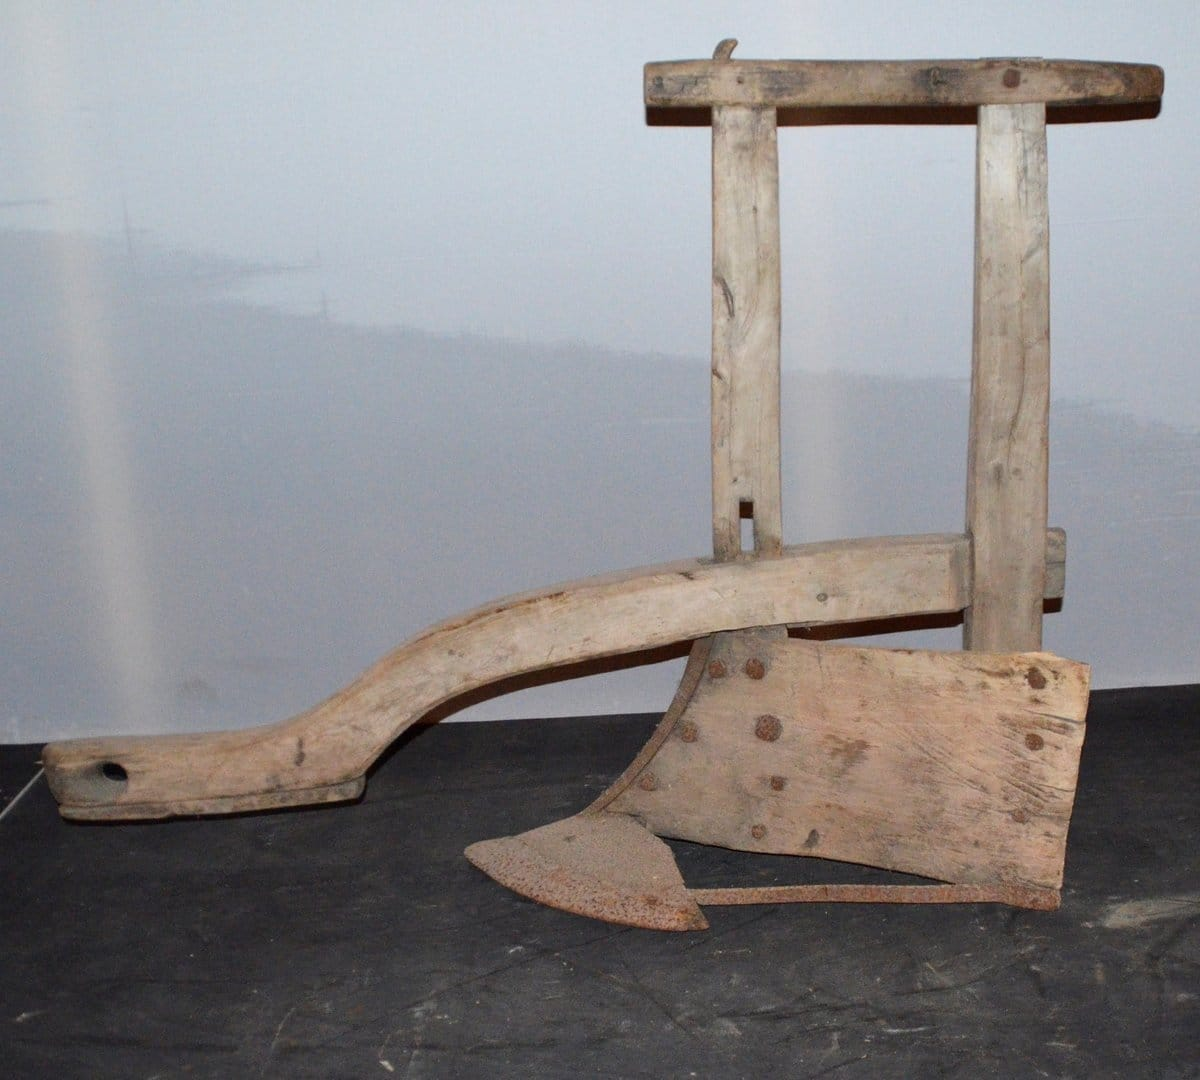 An old Norwegian plough made of wood and iron. 85 cm tall - and 106 cm long. Used with a horse. From Hopland, Utvik, Stryn, Sogn og Fjordane. | Photo: Nordfjord Folkemuseum - digitaltmuseum.no NFM.0000-00985 - cc by-sa.